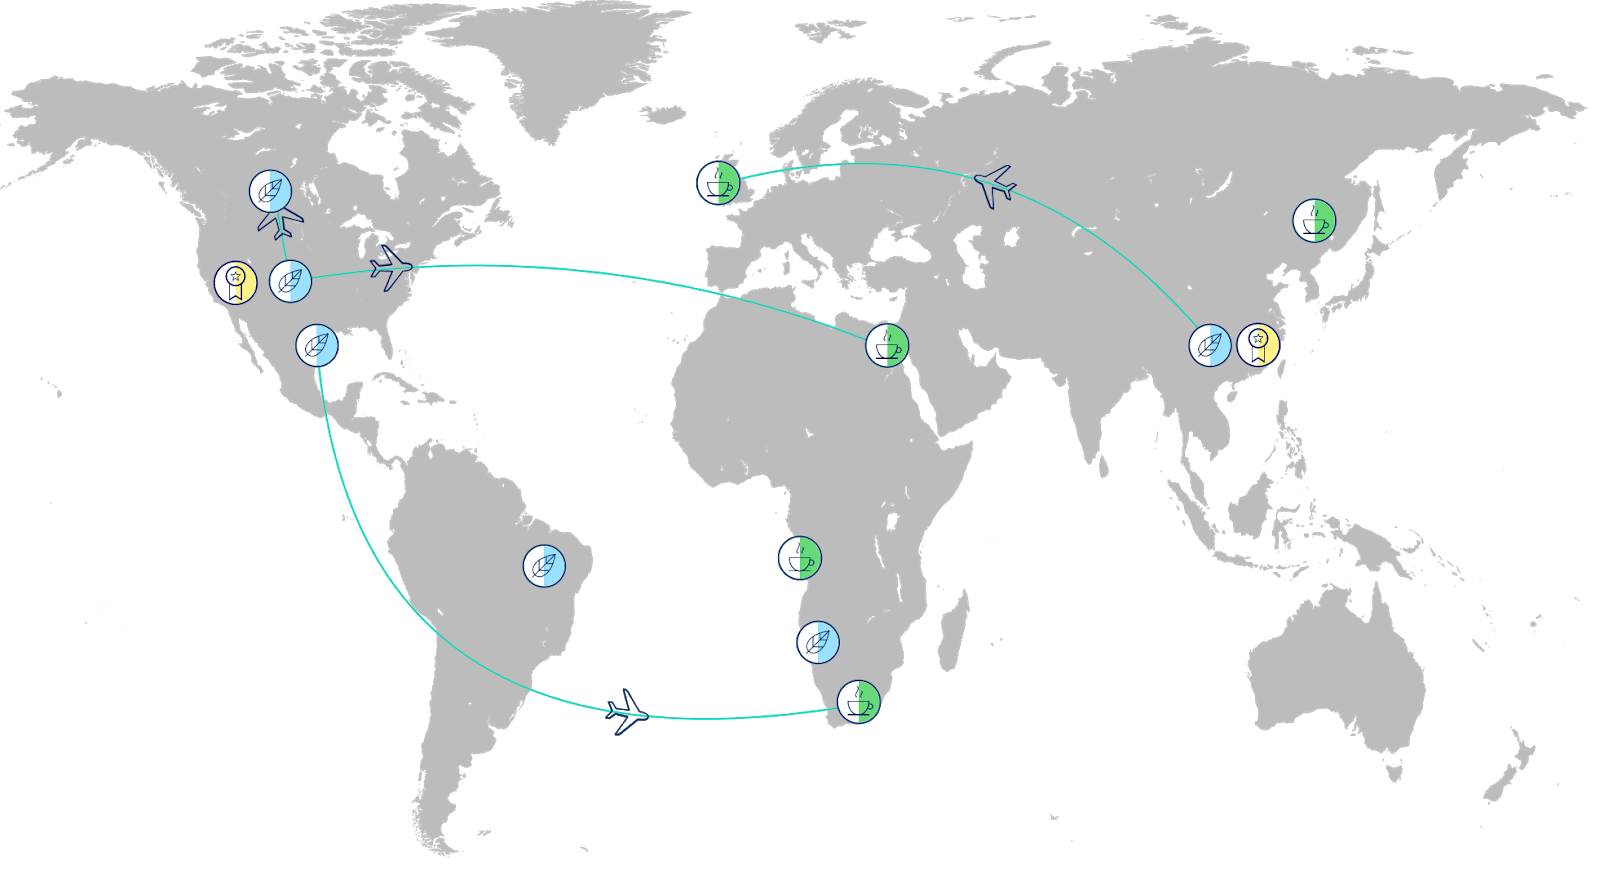 A world map with icons of coffee beans representing growers, airplanes representing shippers, and coffee cups representing buyers with lines connecting them.